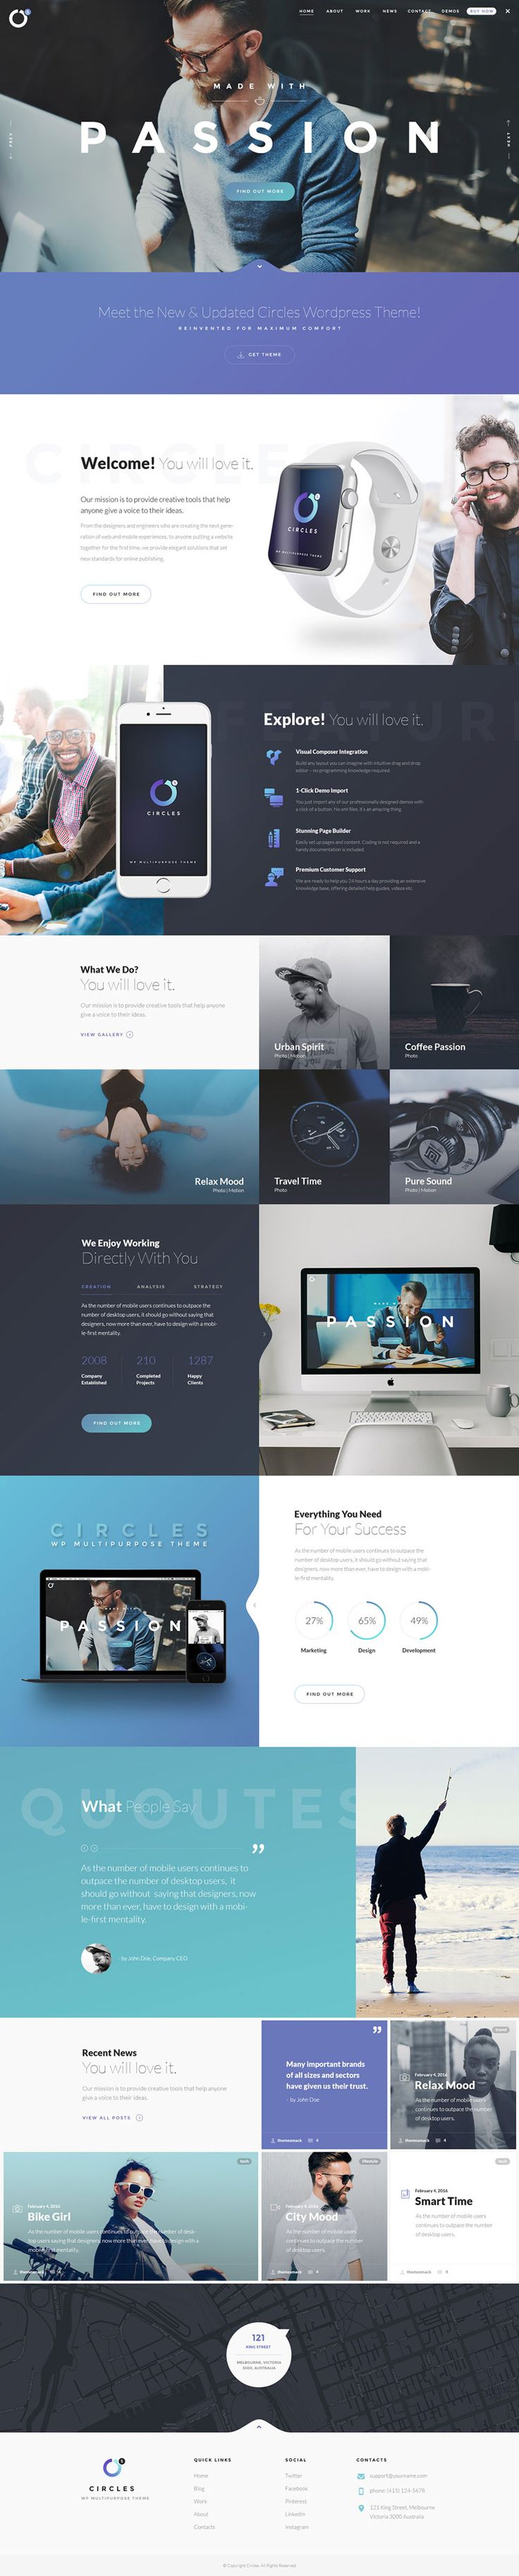 best ideas about web design on pinterest web ui design ui design